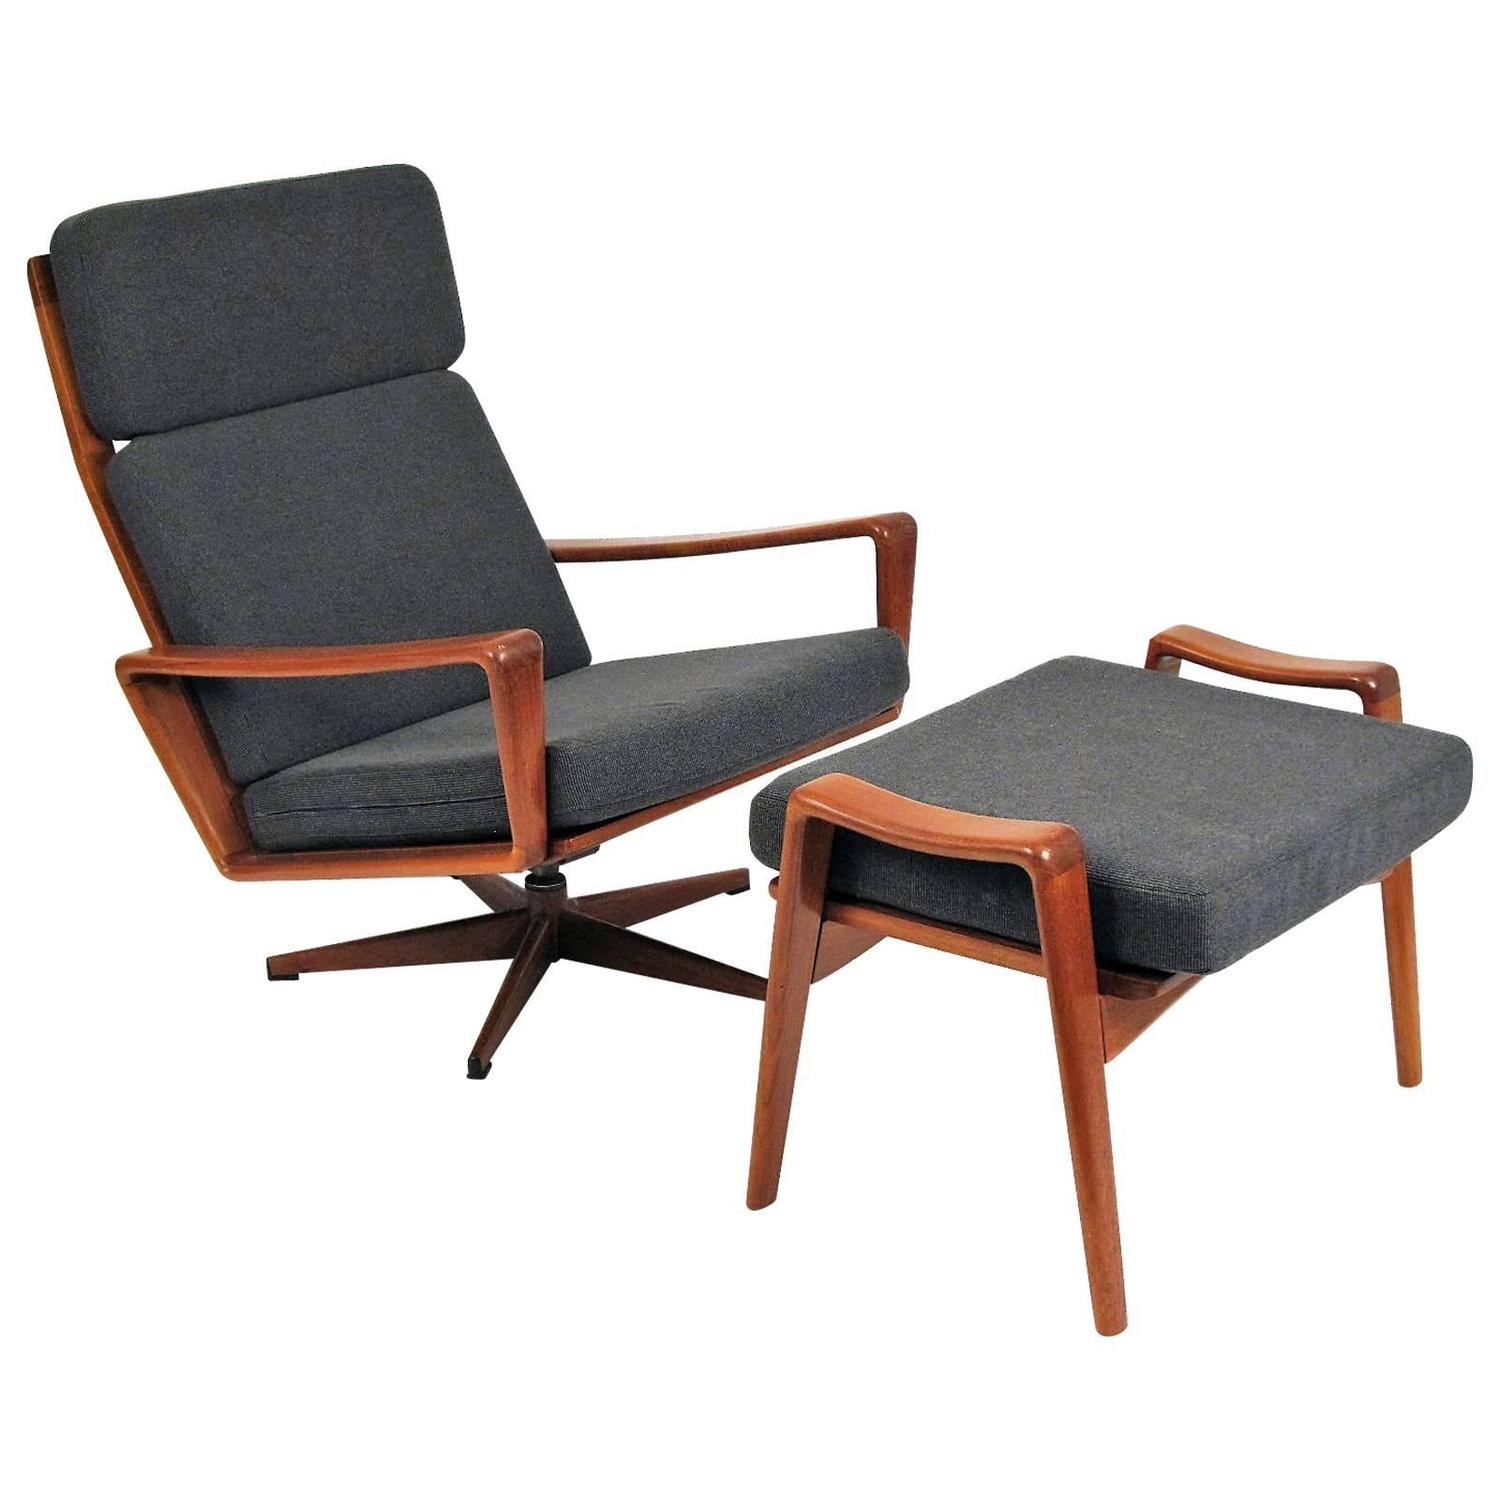 Scandinavian teak rocking lounge chair and ottoman at 1stdibs - Scandinavian chair ...